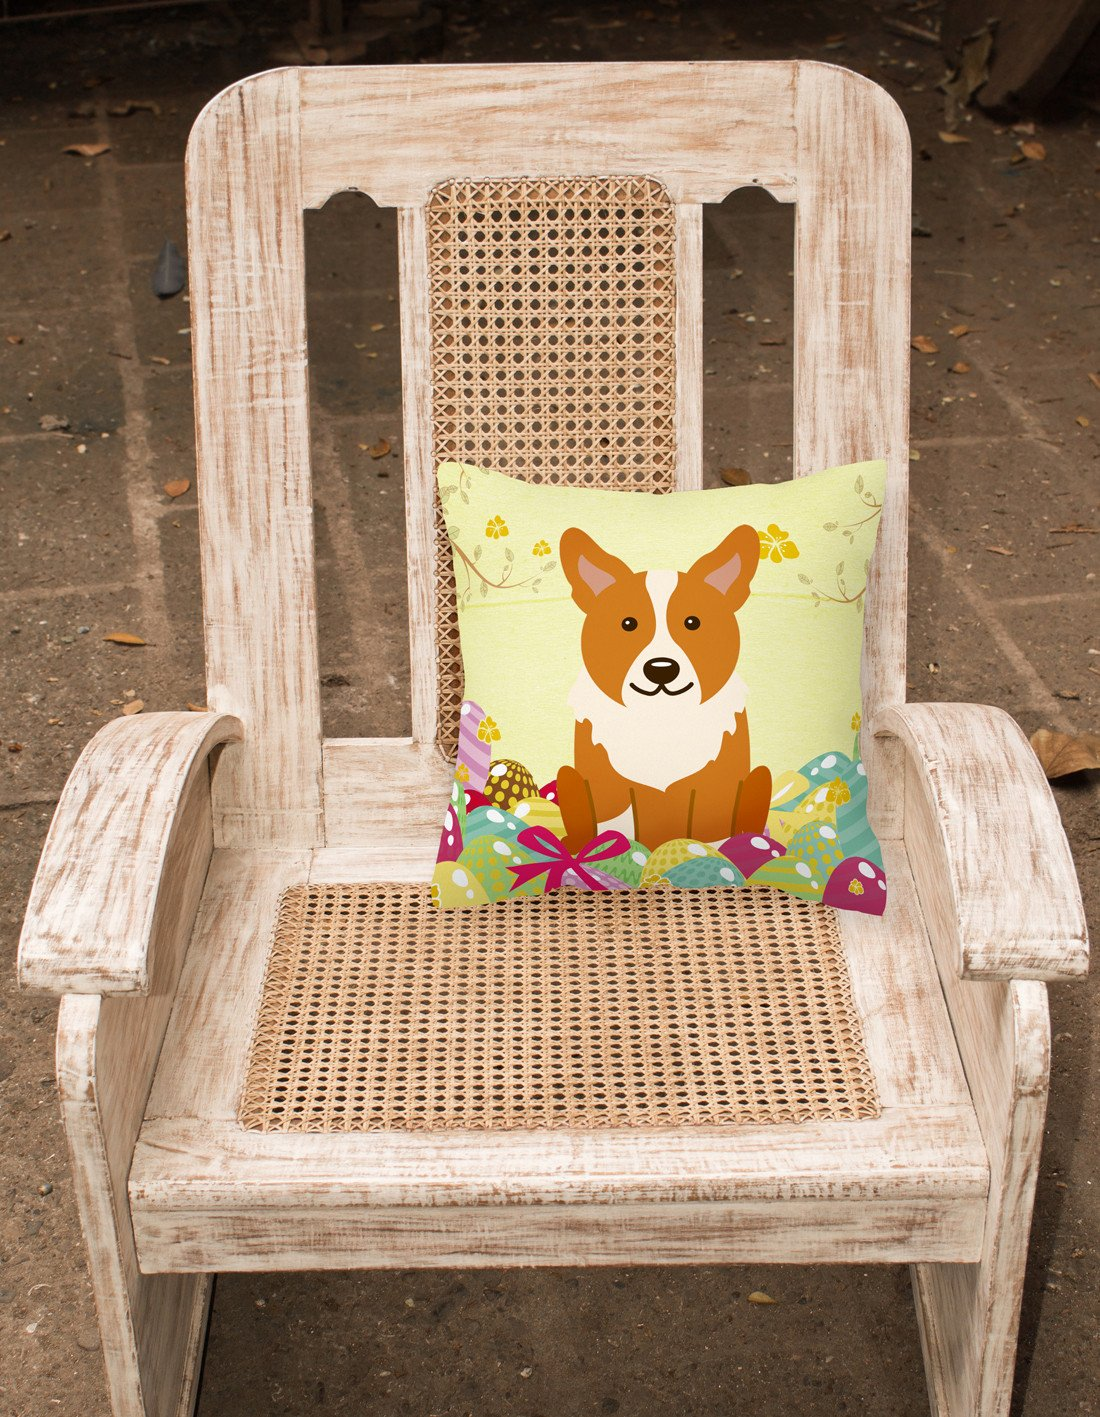 Easter Eggs Corgi Fabric Decorative Pillow BB6100PW1818 by Caroline's Treasures